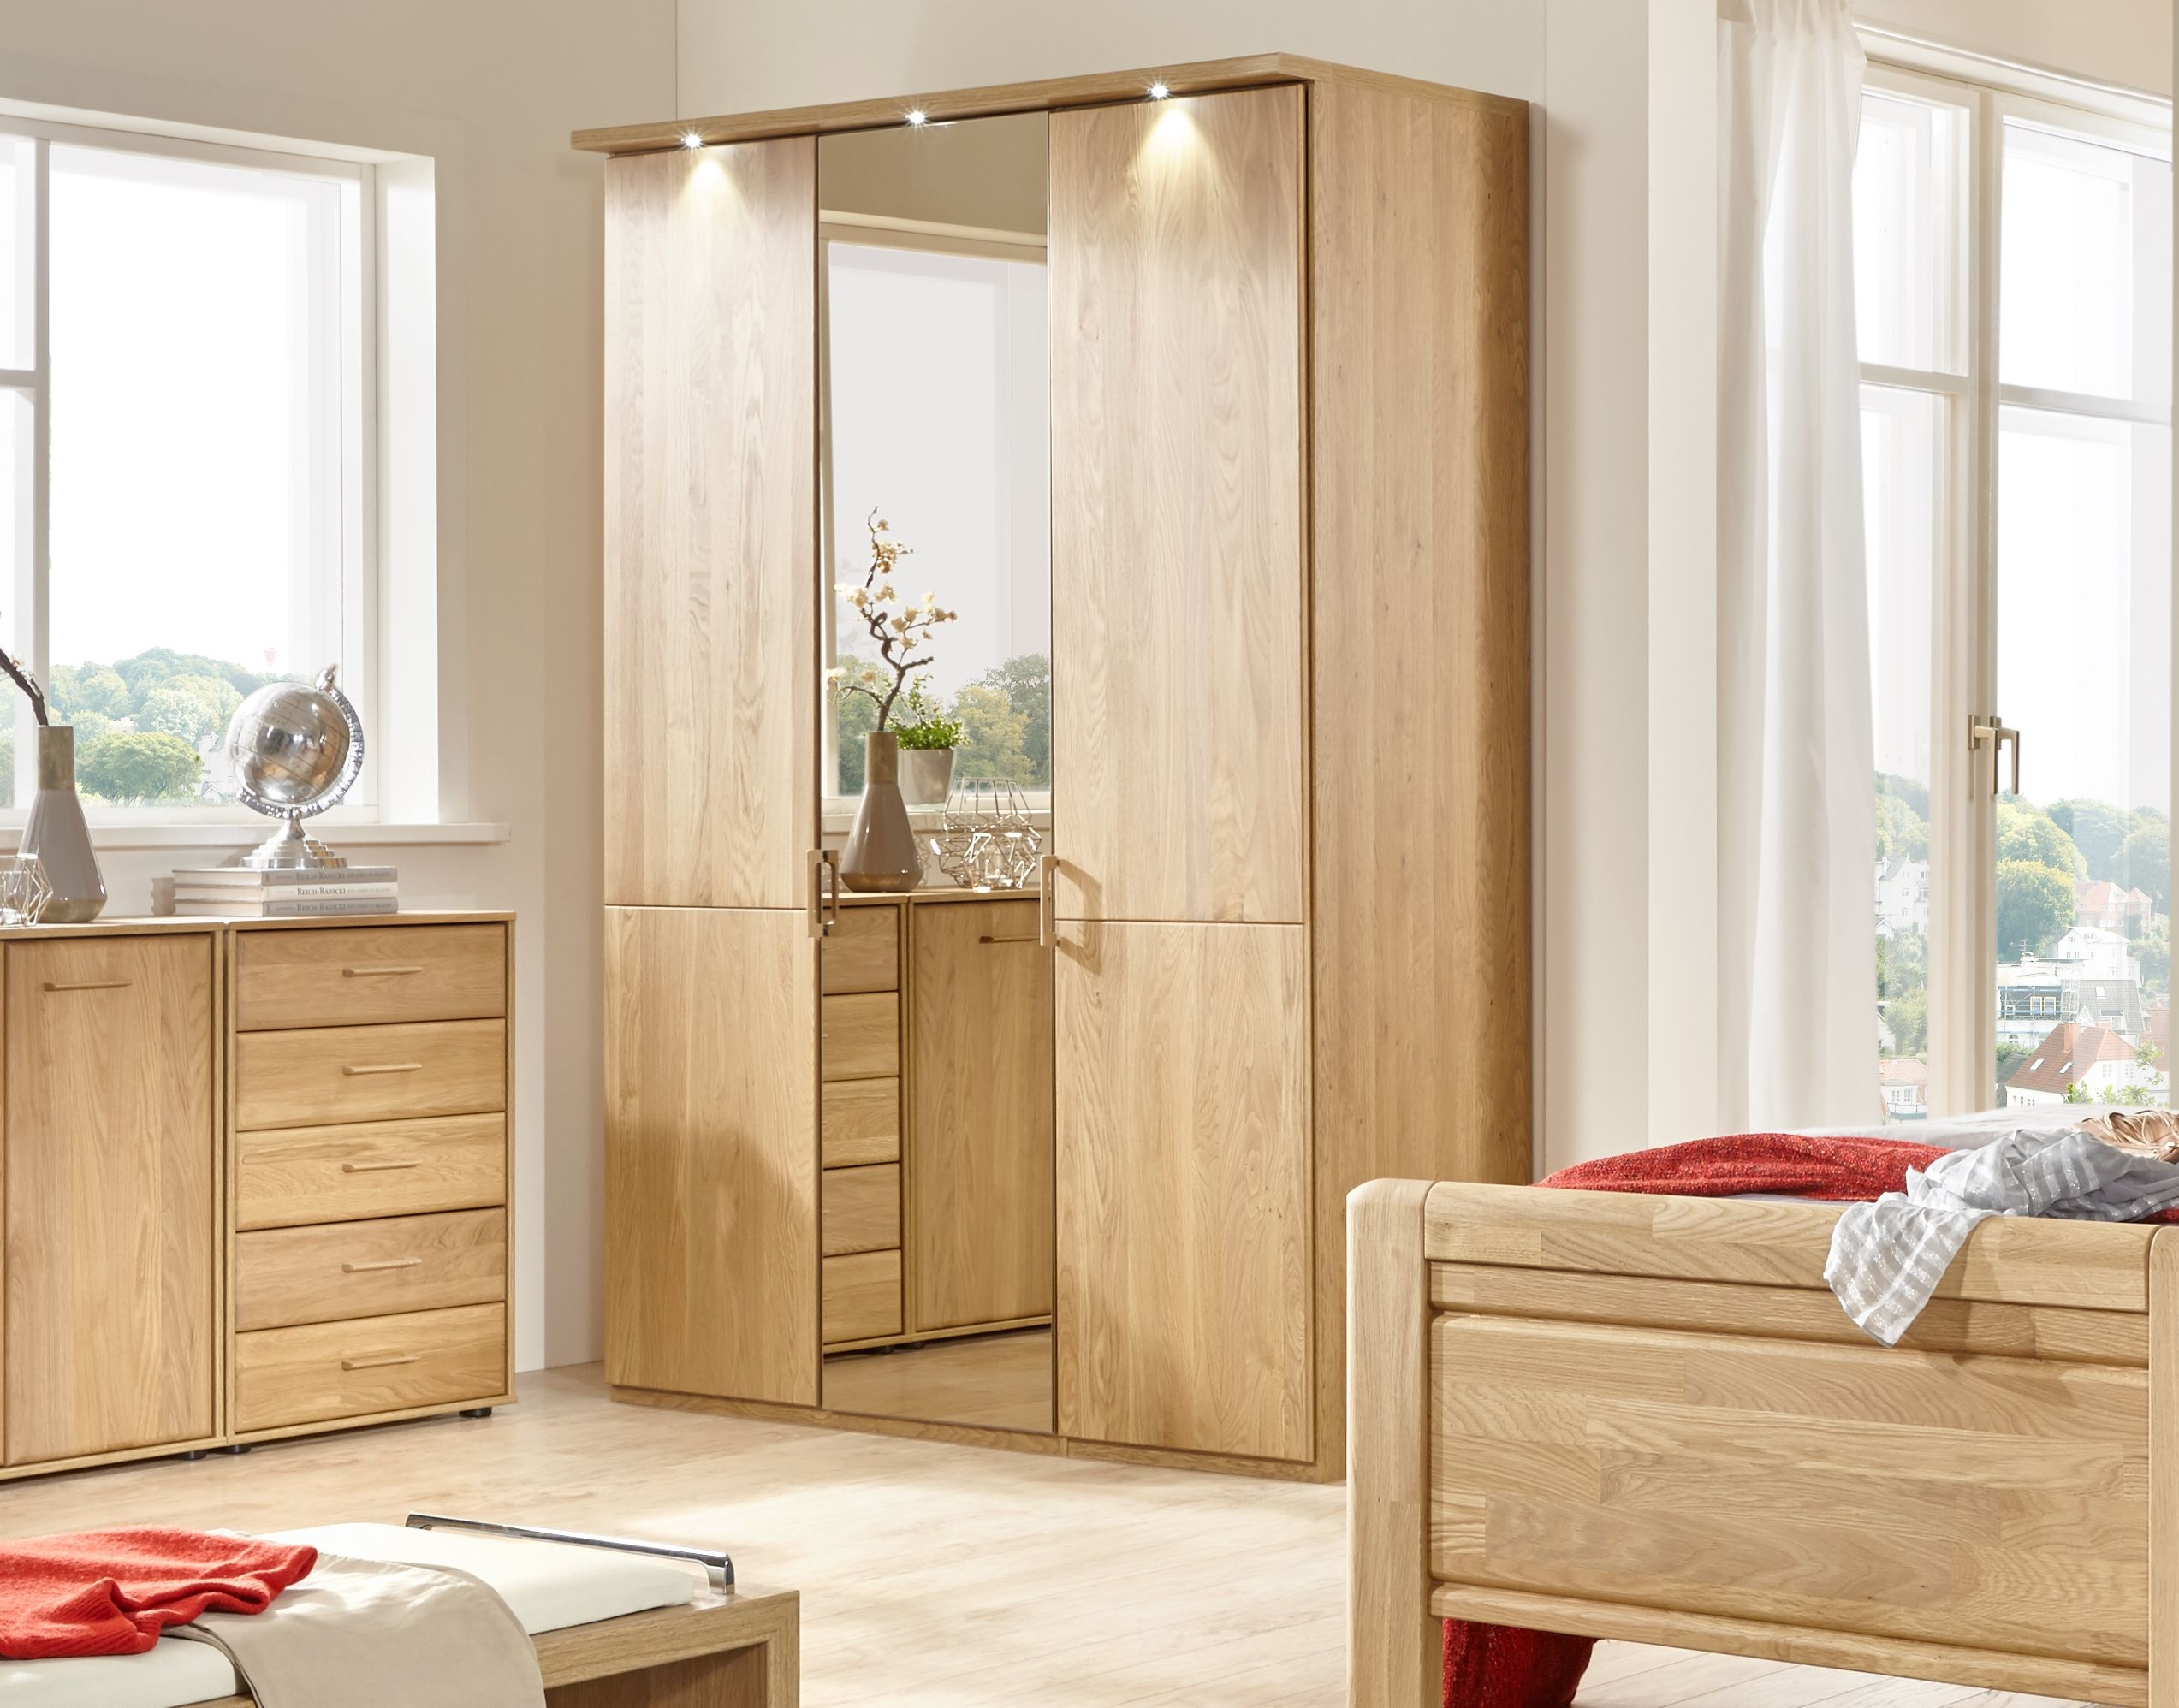 Wiemann Lido 6 Door 2 Mirror Wardrobe in Oak - W 300cm